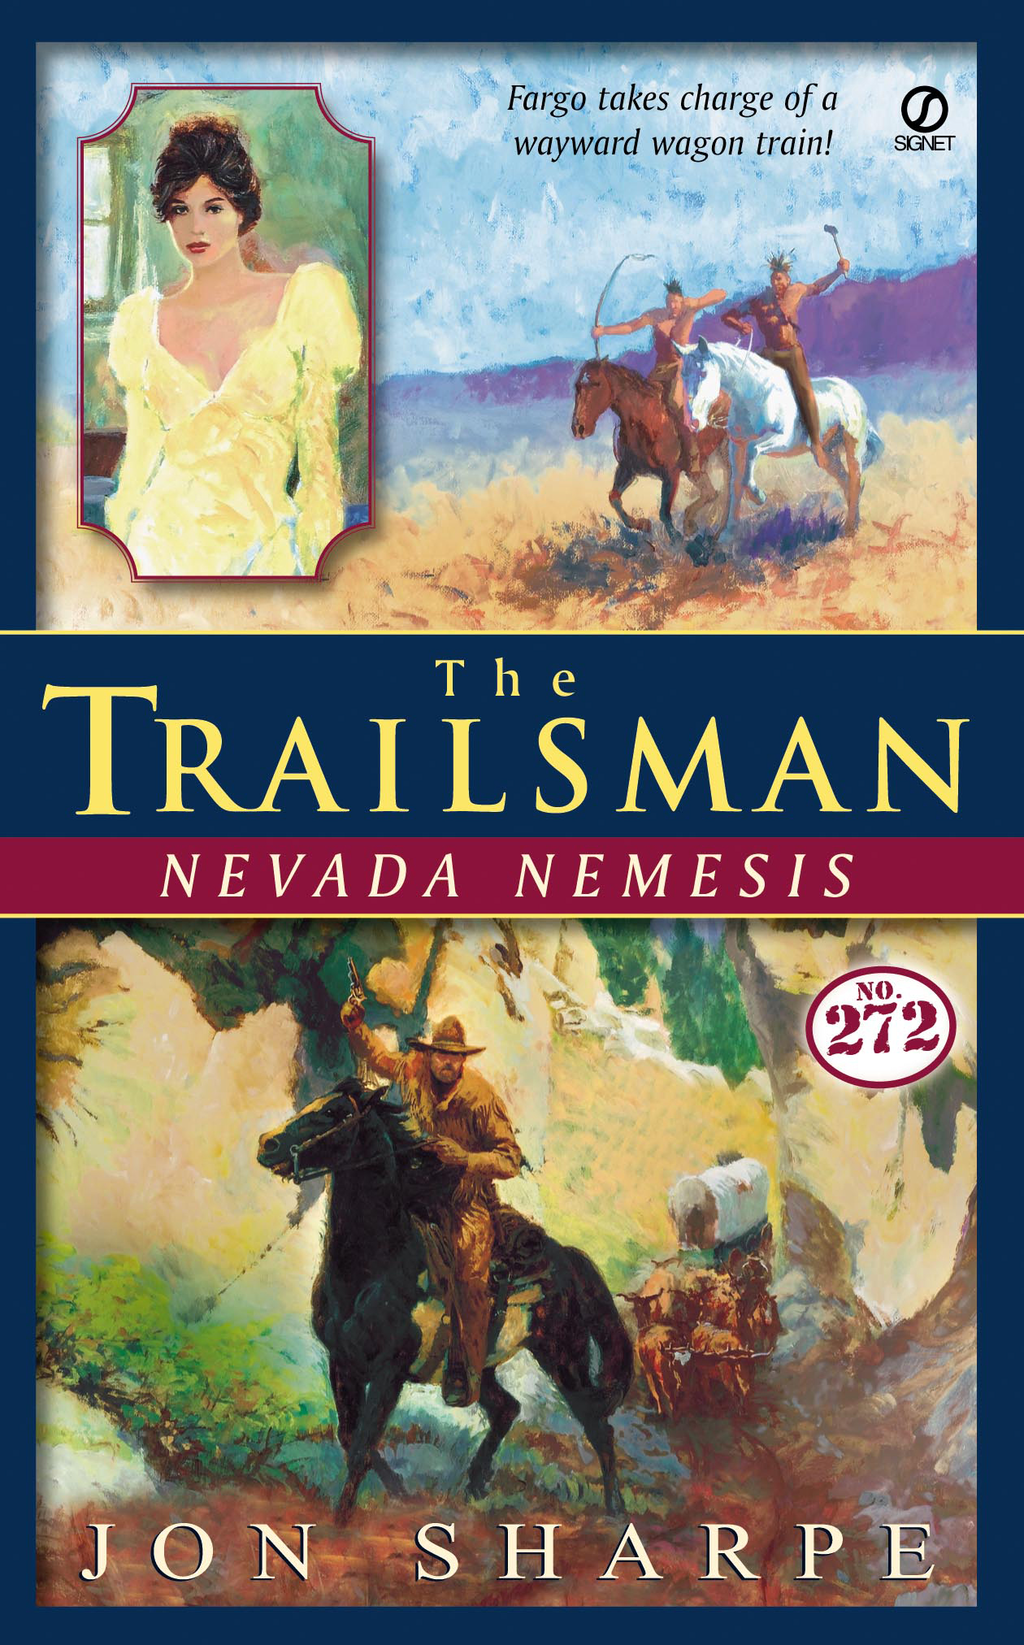 Trailsman #272, The: Nevada Nemesis